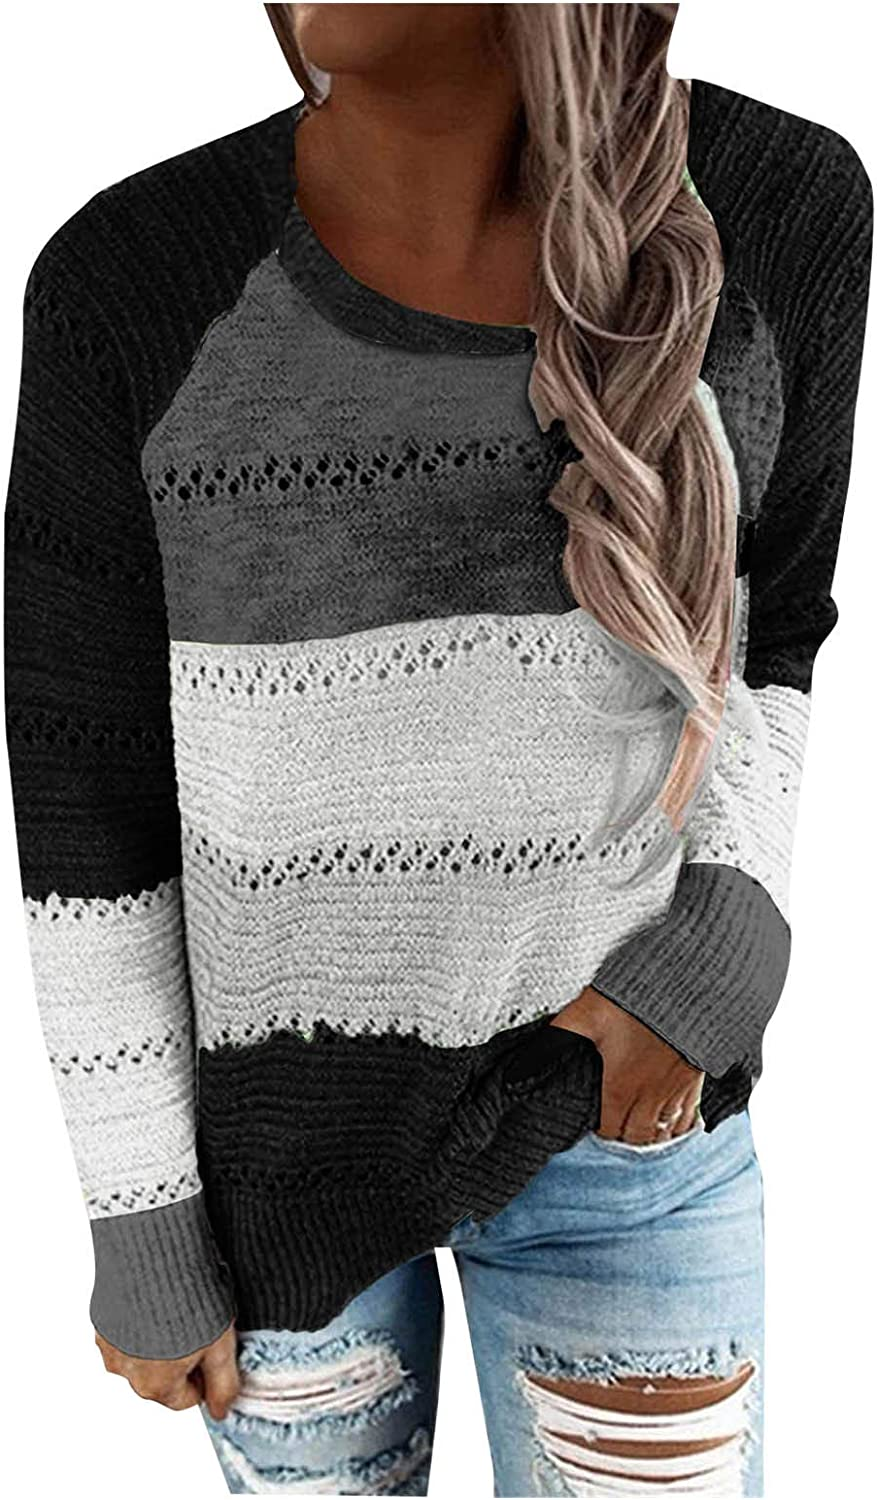 FABIURT Women's Color Block Casual Sweaters Long Sleeve Crew Neck Drawstring Knitted Pullover Tops Blouse Sweatshirts